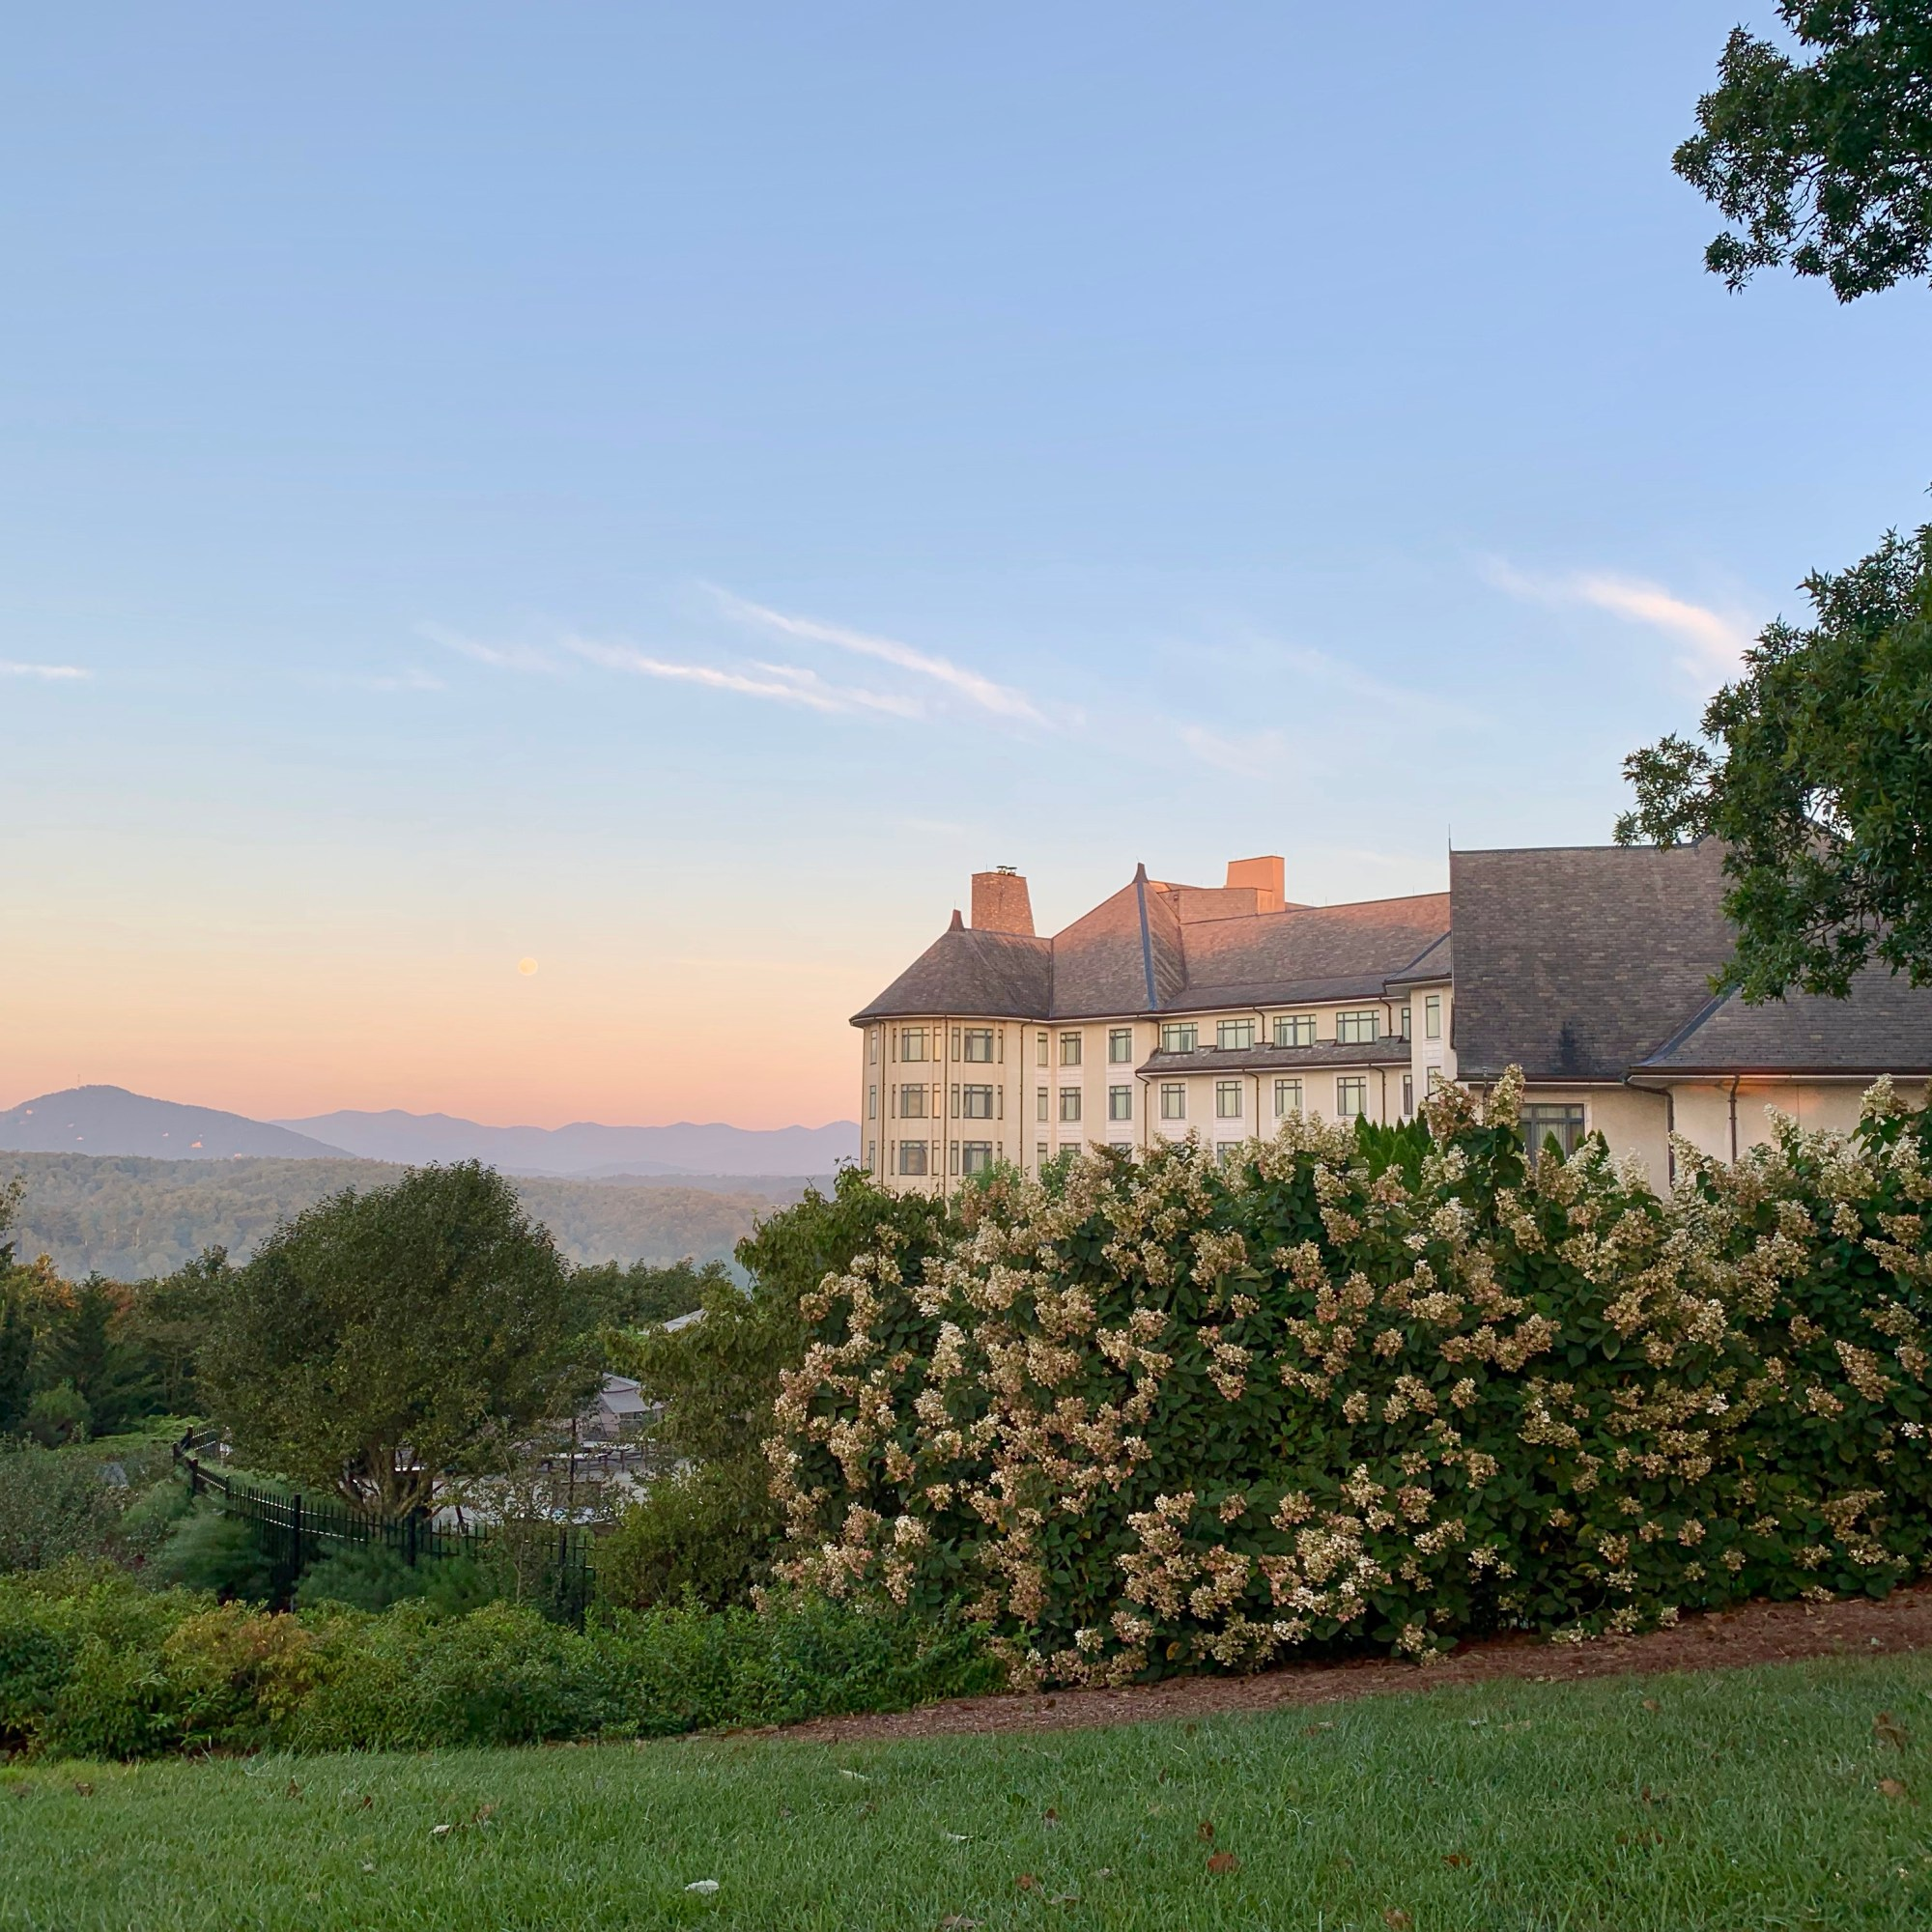 Sunrise over Inn at Biltmore